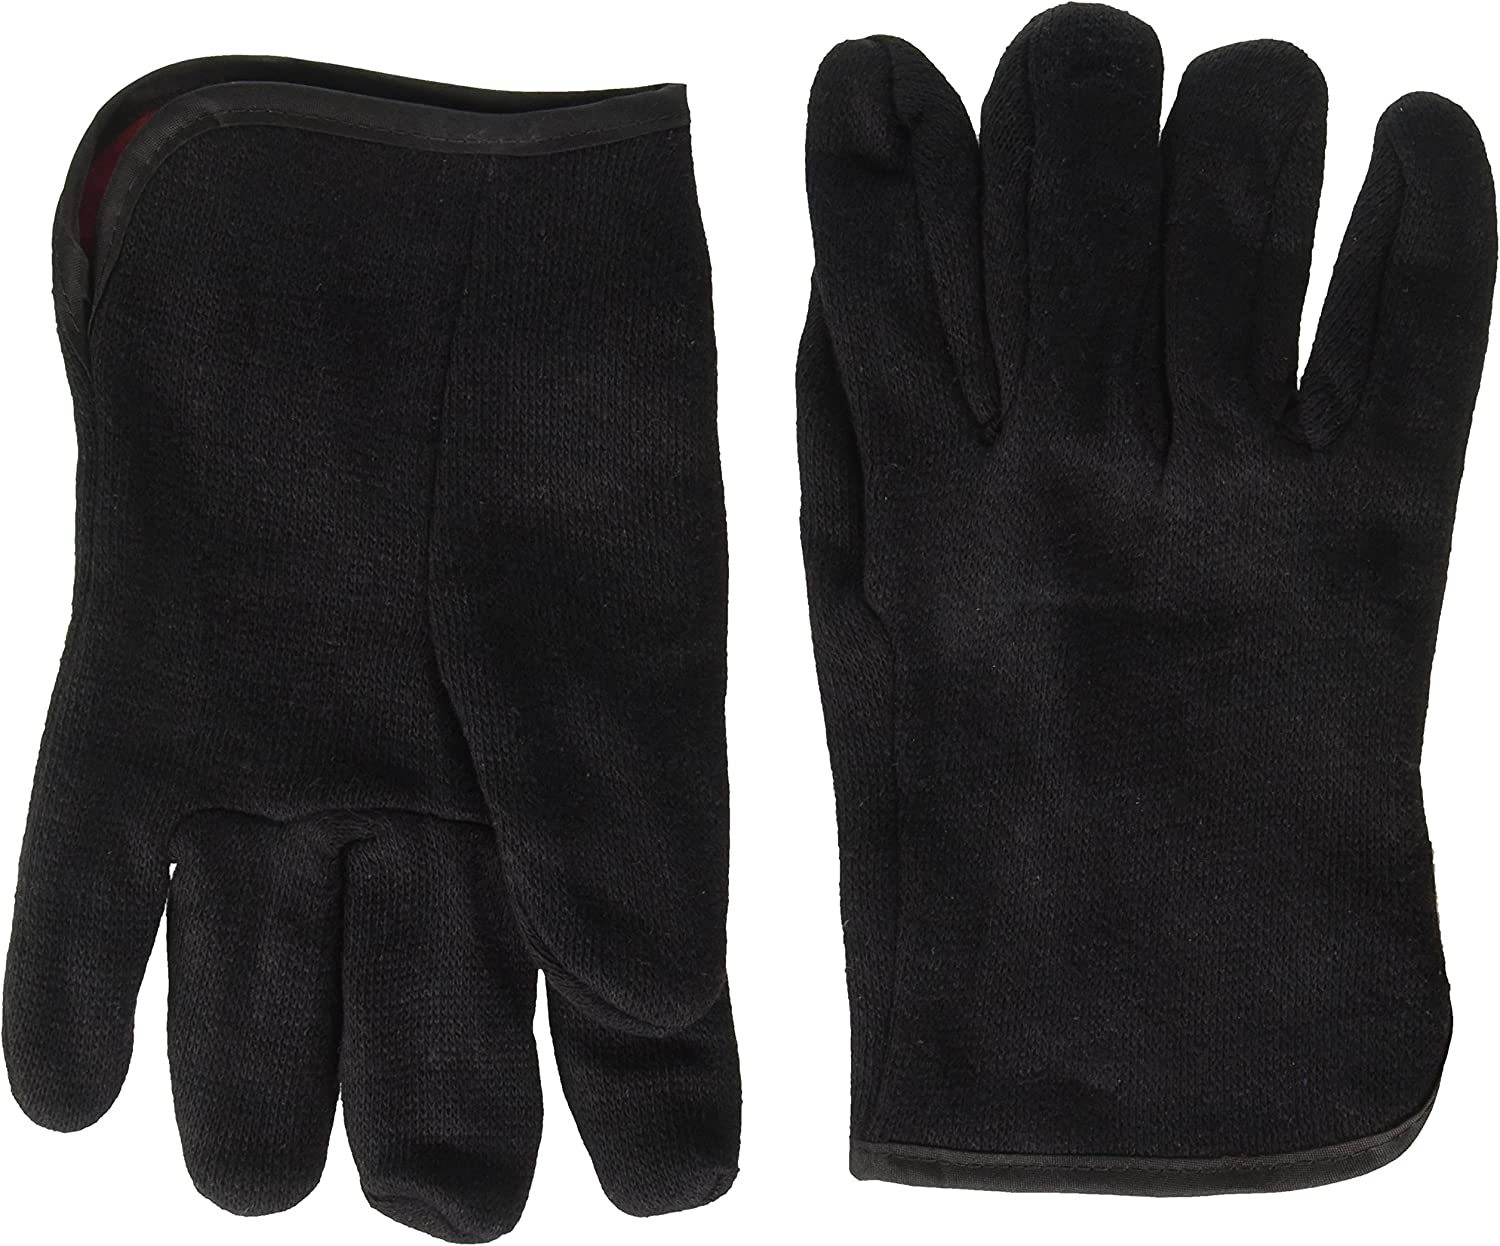 Pair BlackCanyon Outfitters 69000//L Brown Large Jersey Gloves with Red Fleece Lining and Open Cuff